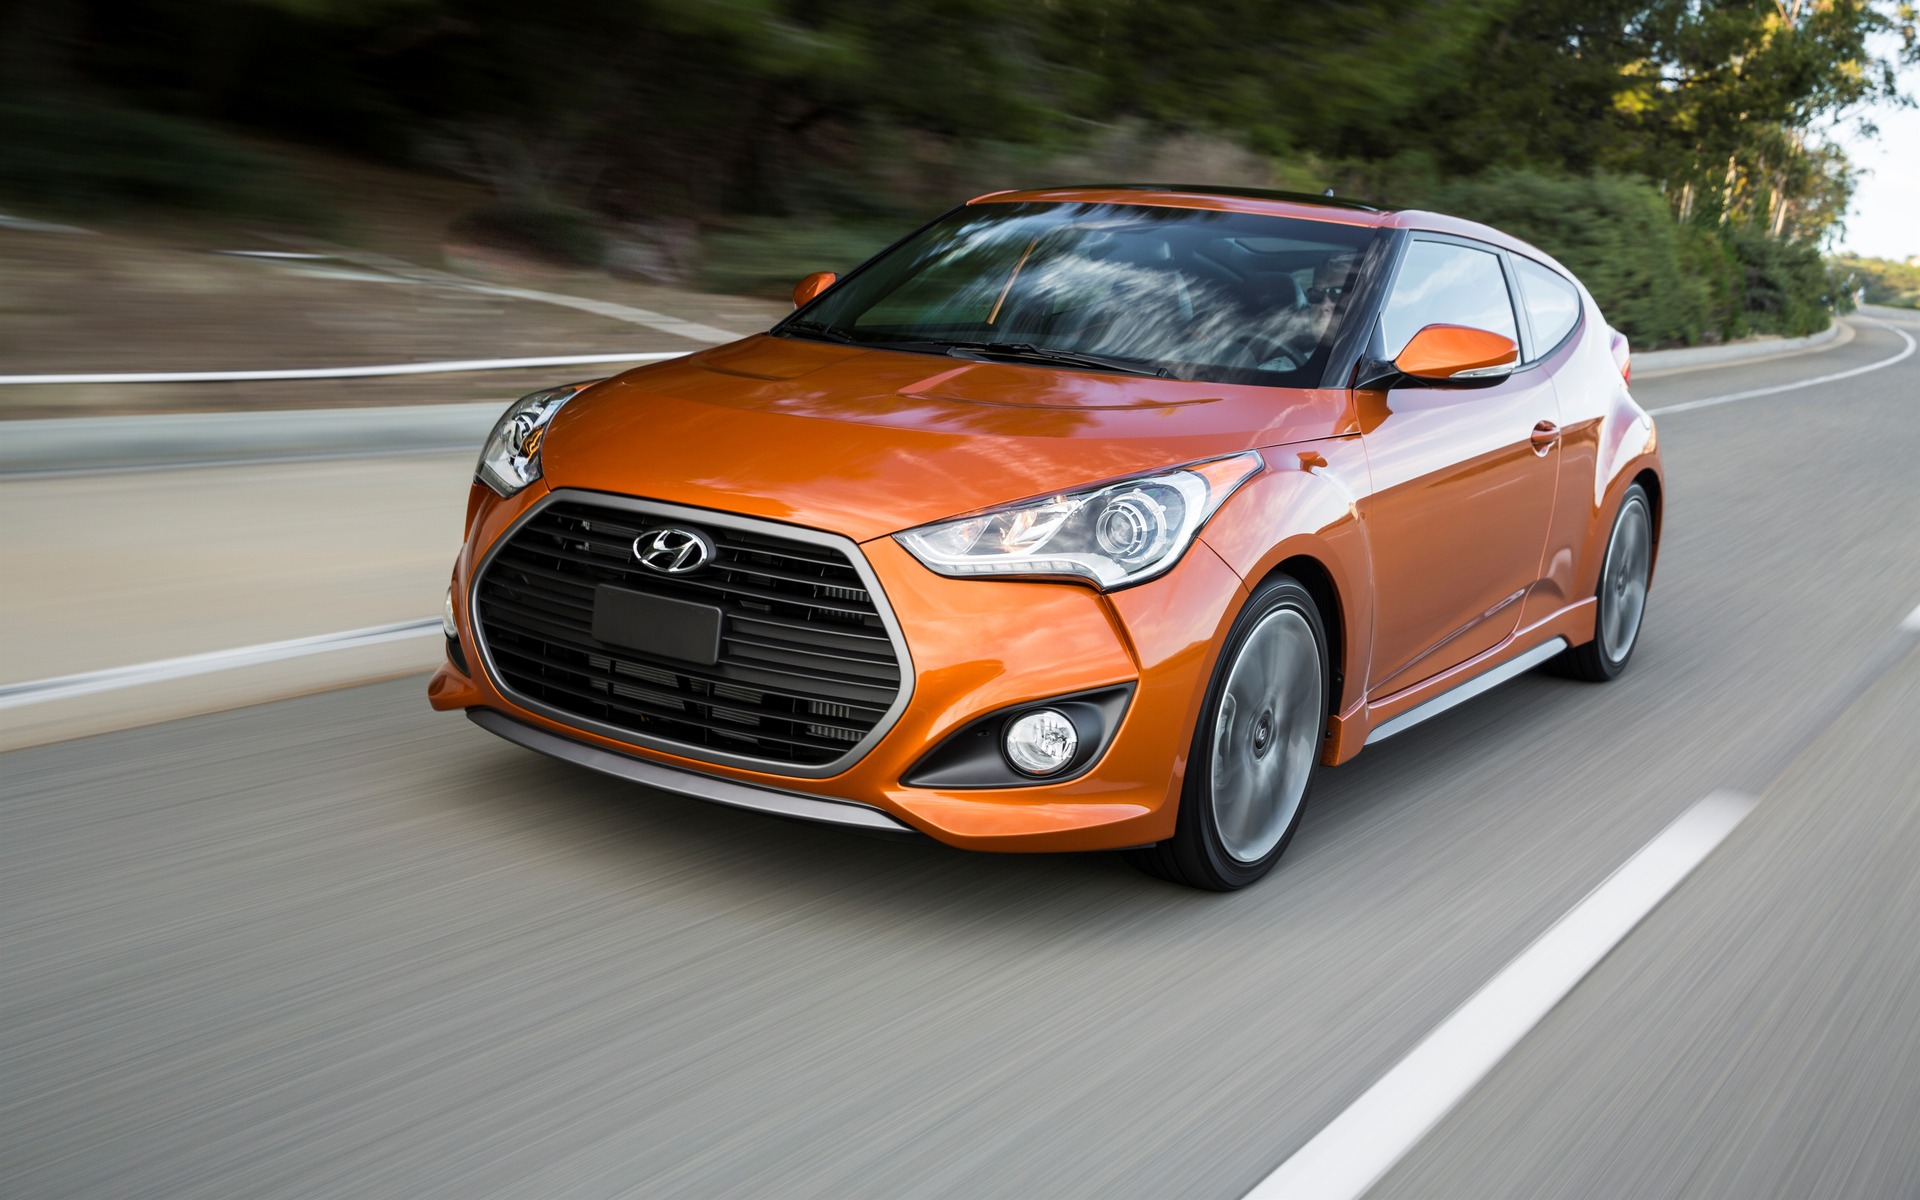 concept car roll veloster wallpapers hd wallpaper hyundai wide top